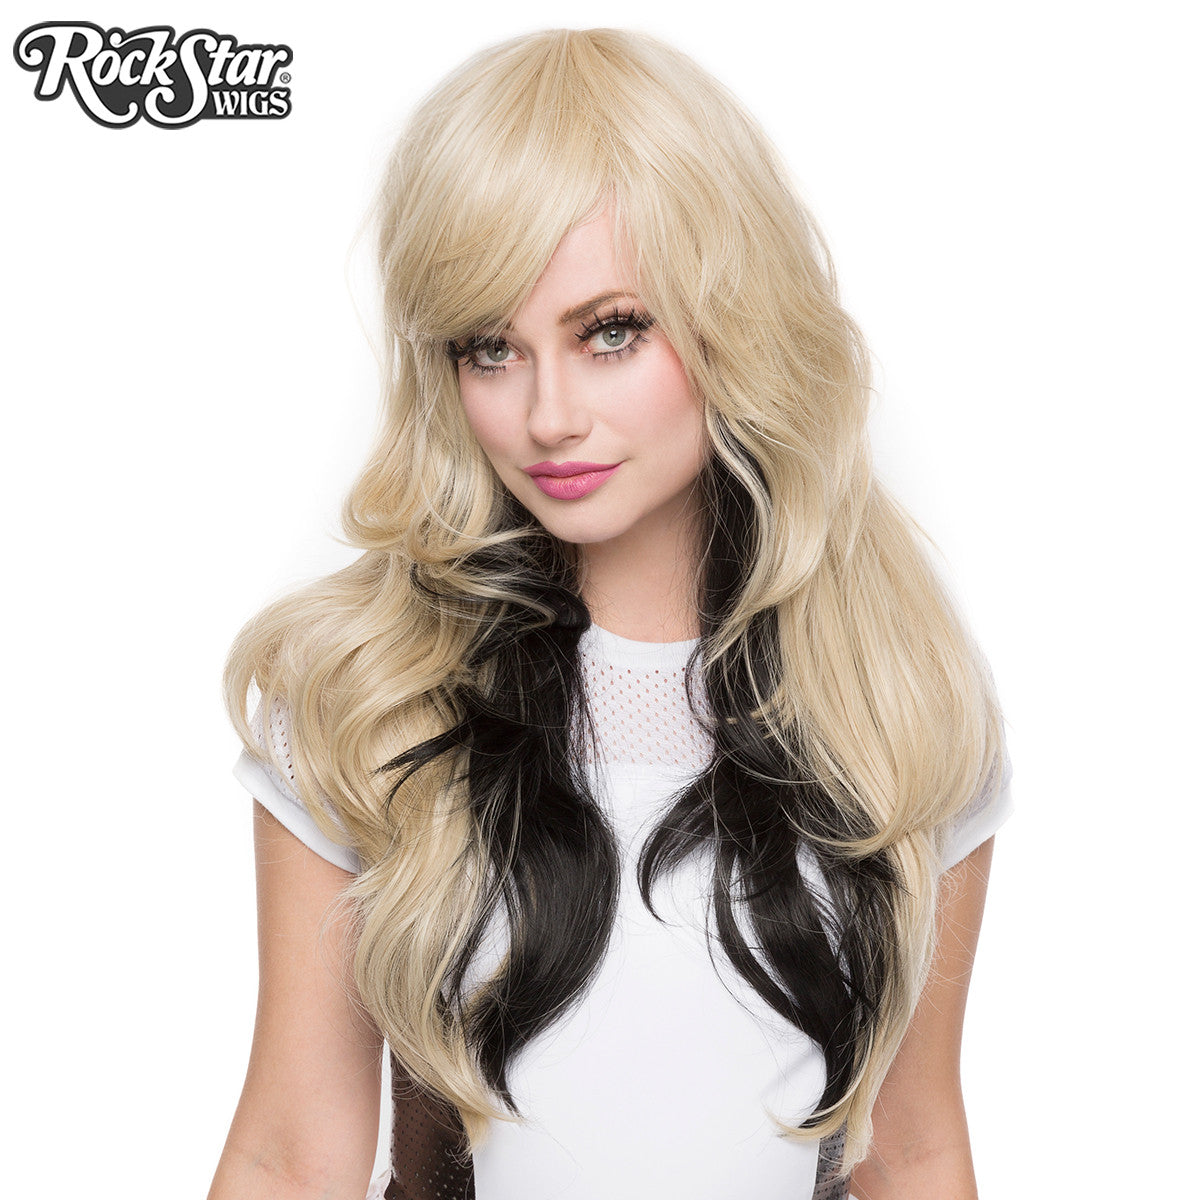 Rockstar Wigs 174 Downtown Girl Collection Blonde Amp Black